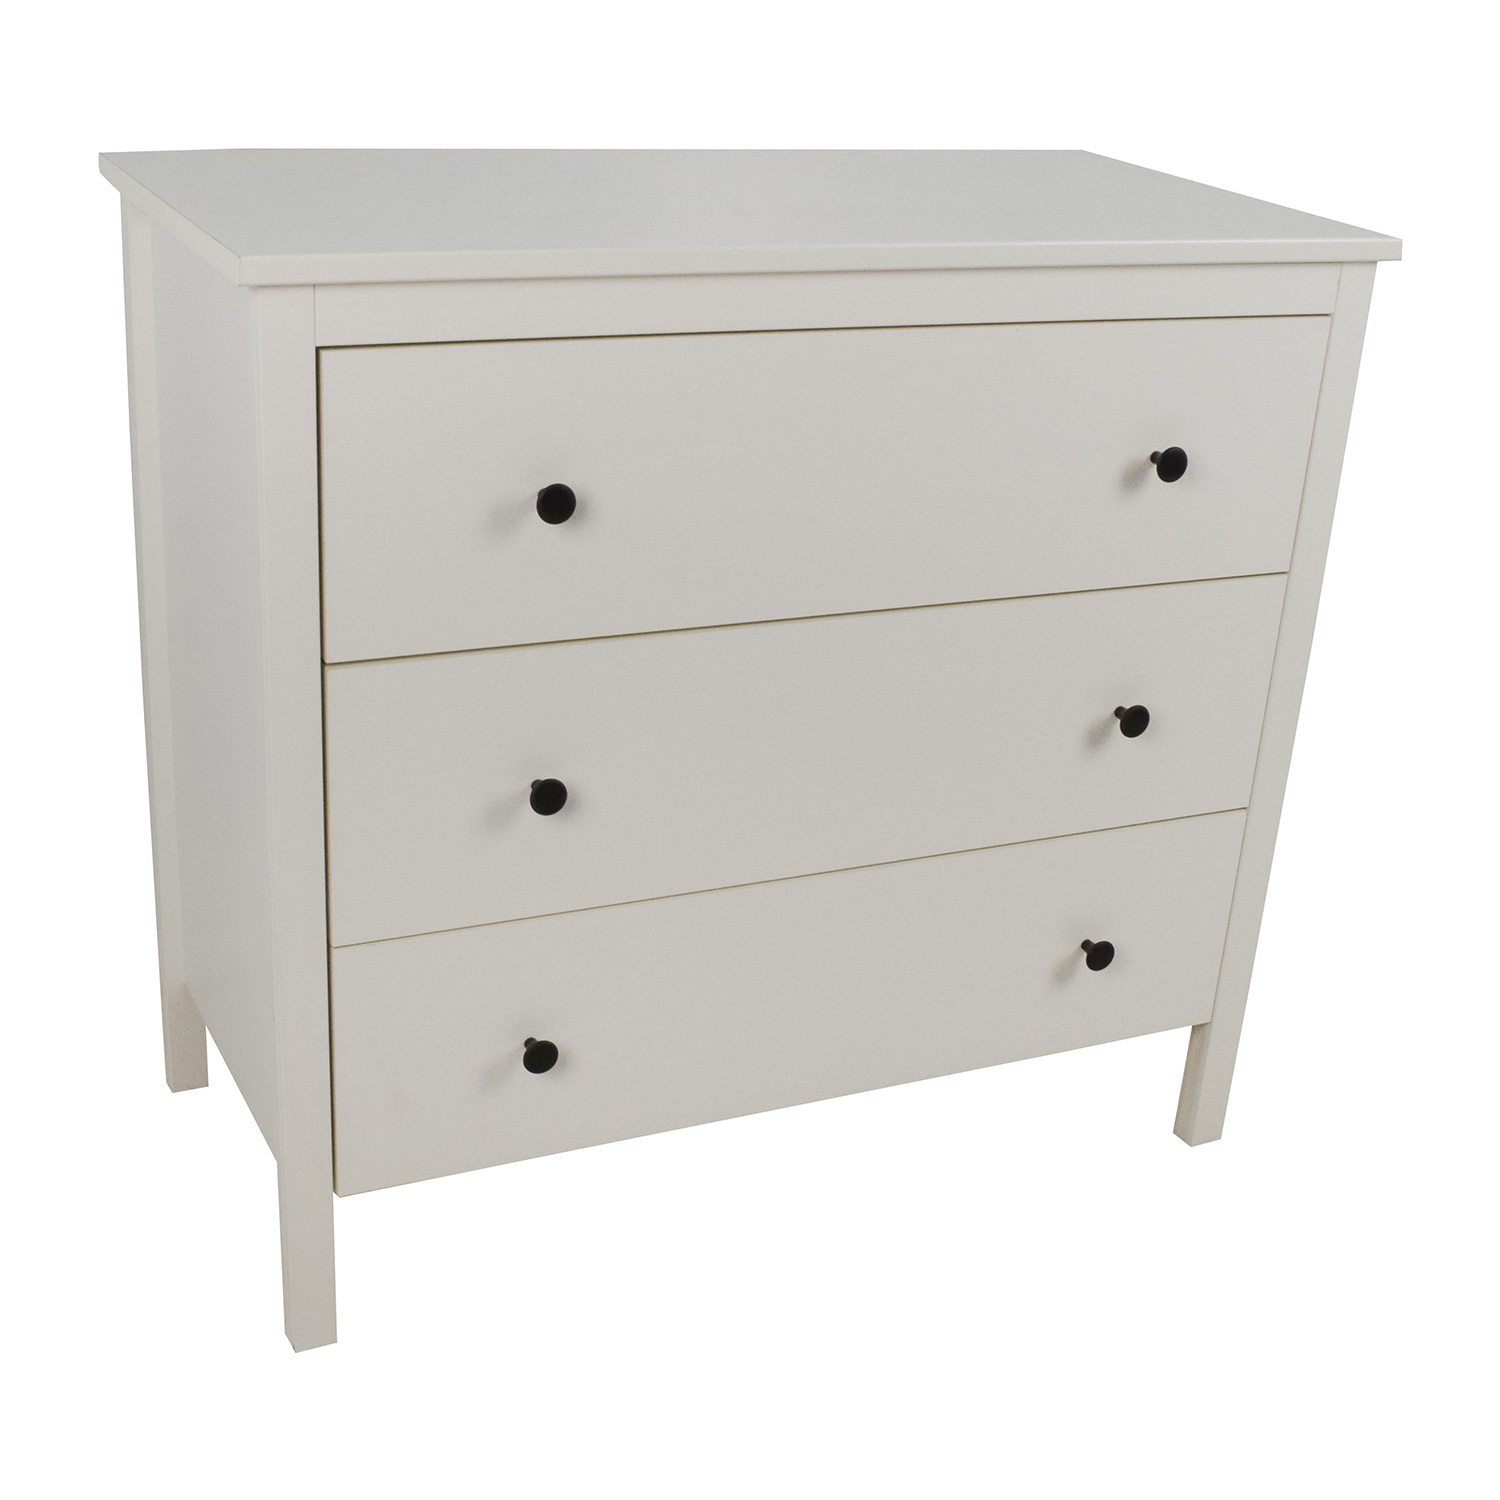 43 off ikea hemnes 3 drawer white dresser storage for Ikea comodino hemnes